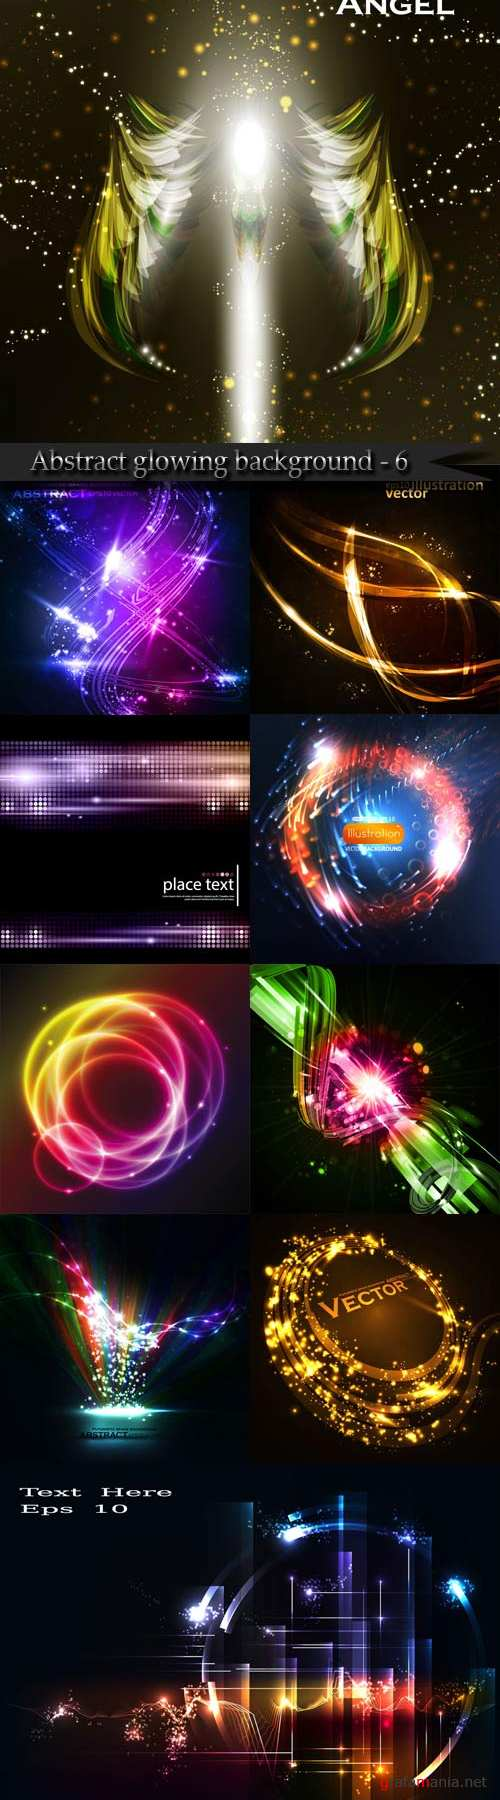 Abstract glowing background - 6